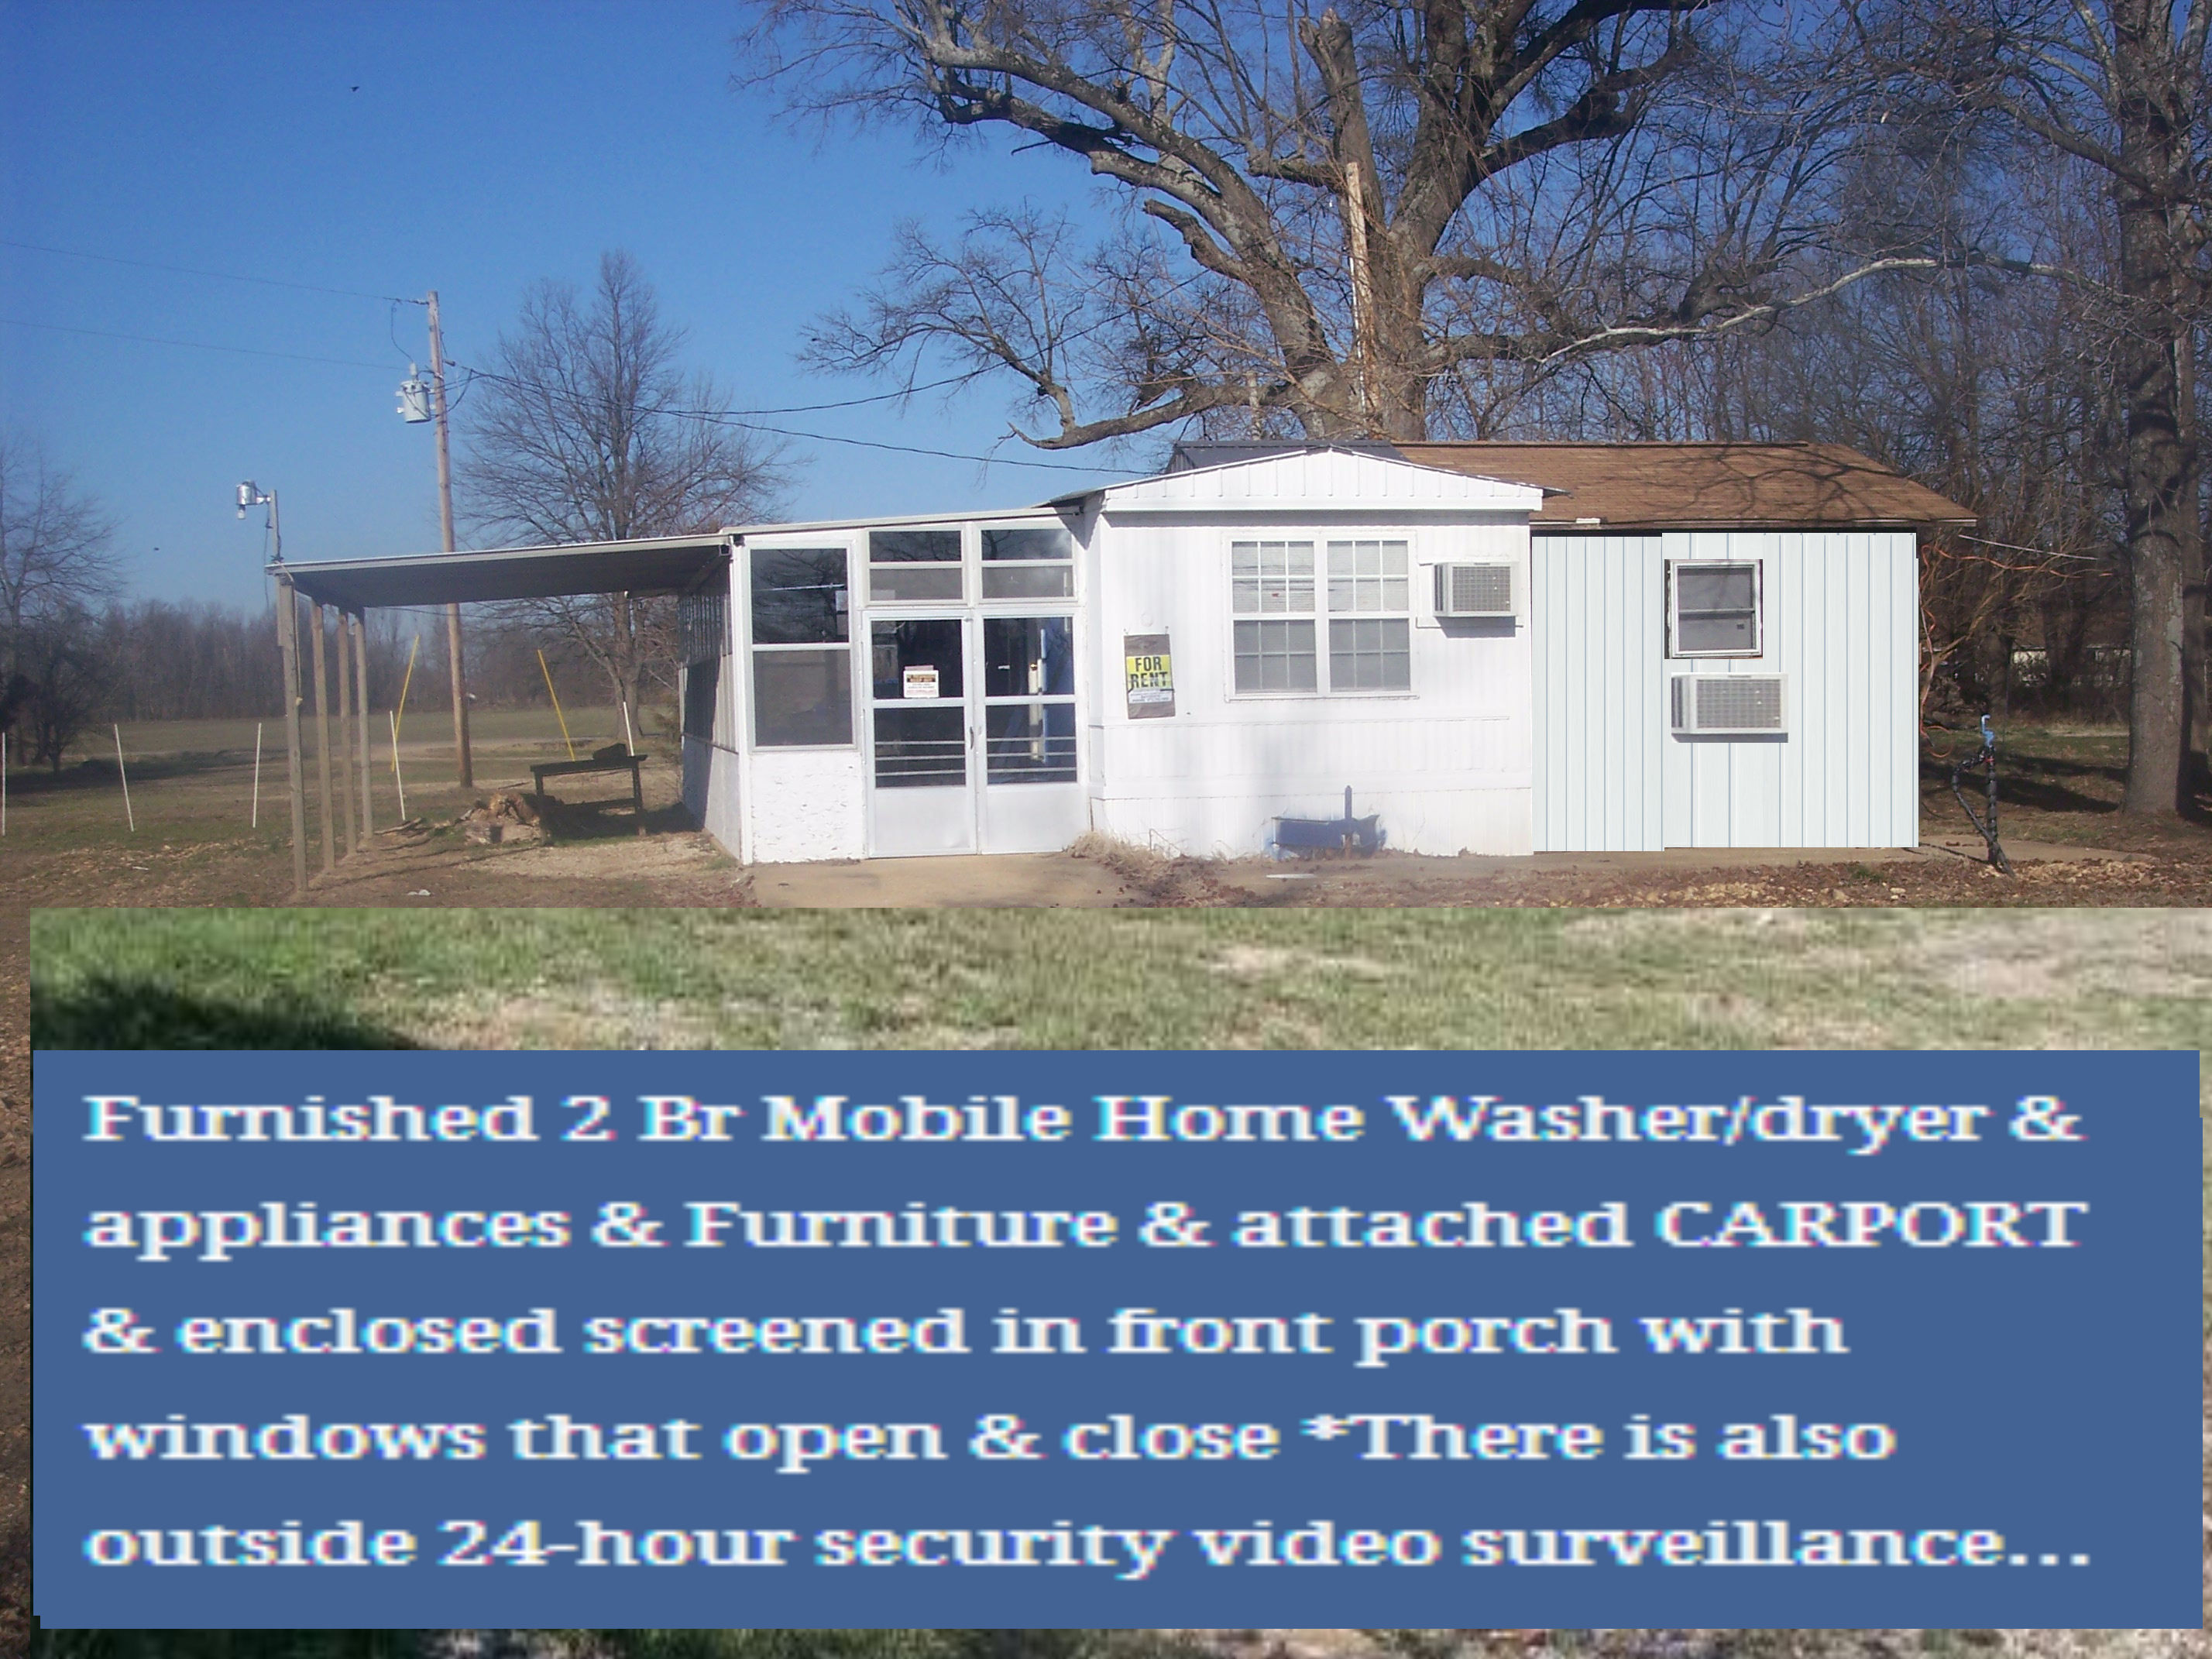 Furnished 2 Br Mobile Home Washer/dryer U0026 Appliances U0026 Furniture U0026 Attached  CARPORT U0026 Enclosed Screened In Front Porch With Windows That Open U0026 Close  All ...